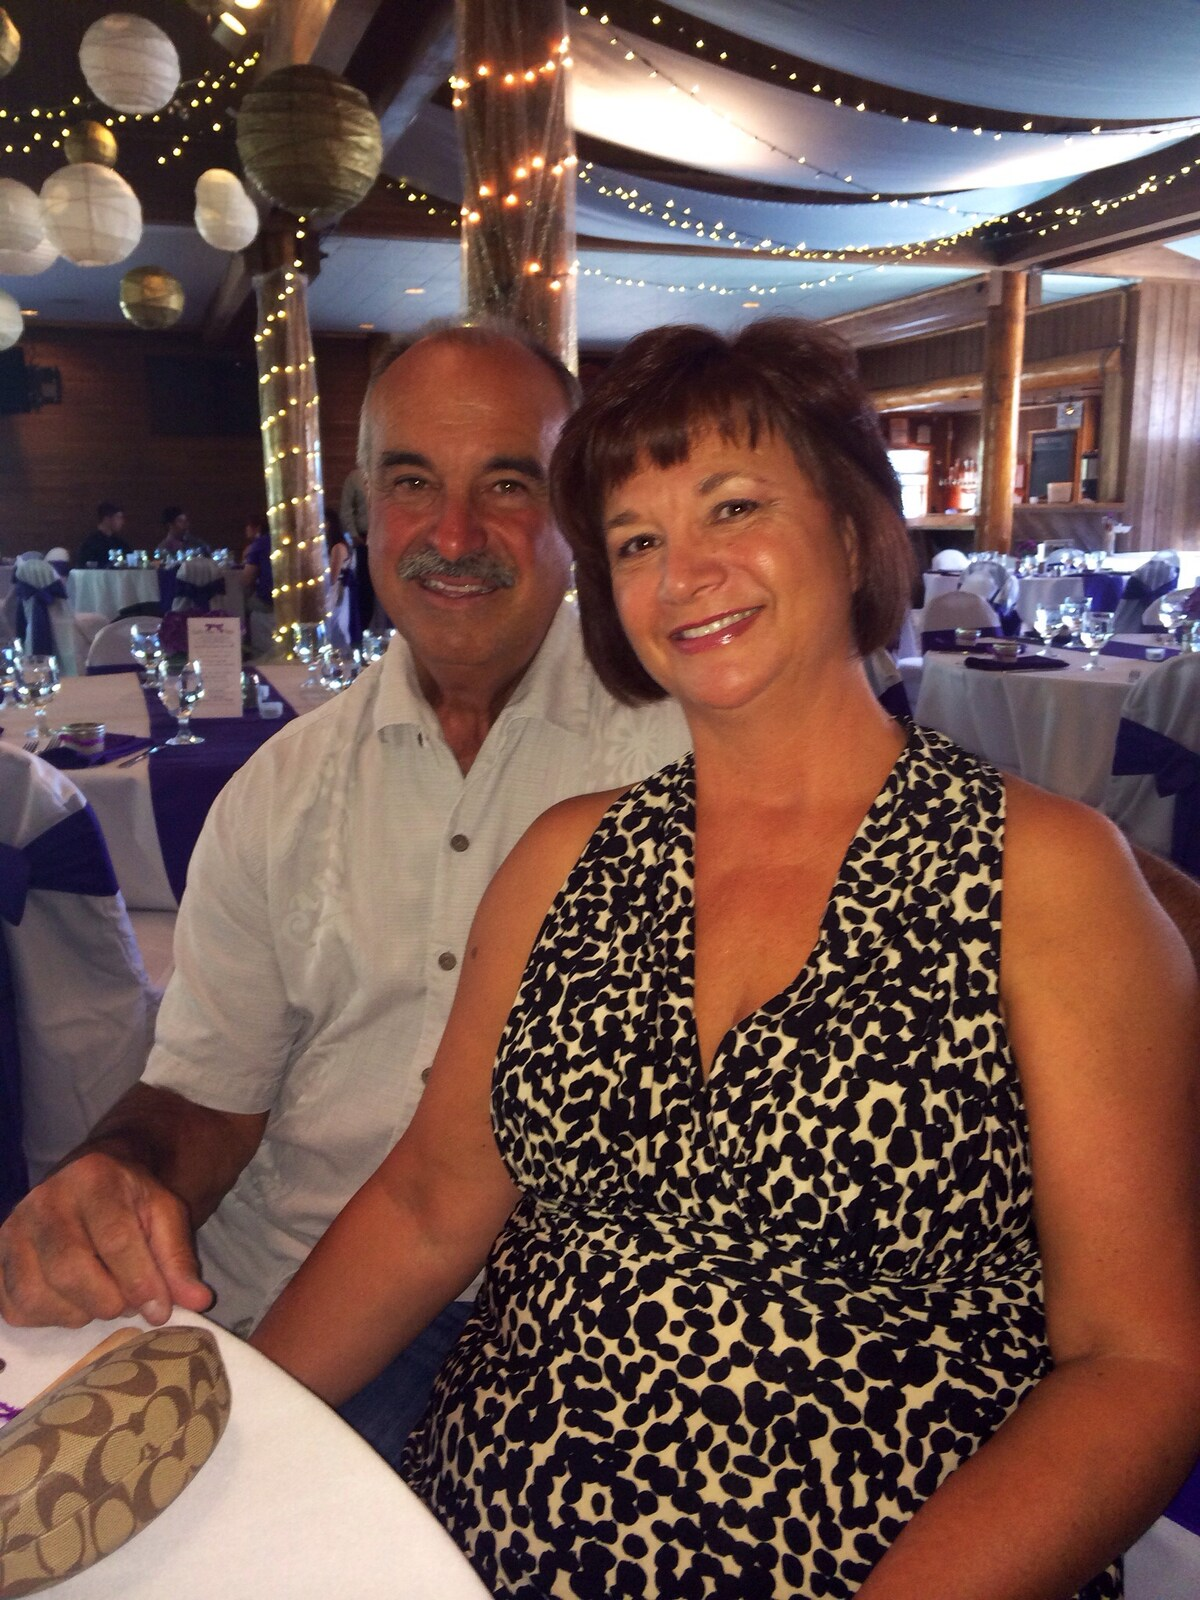 Retired couple, married for over 30 years. We have